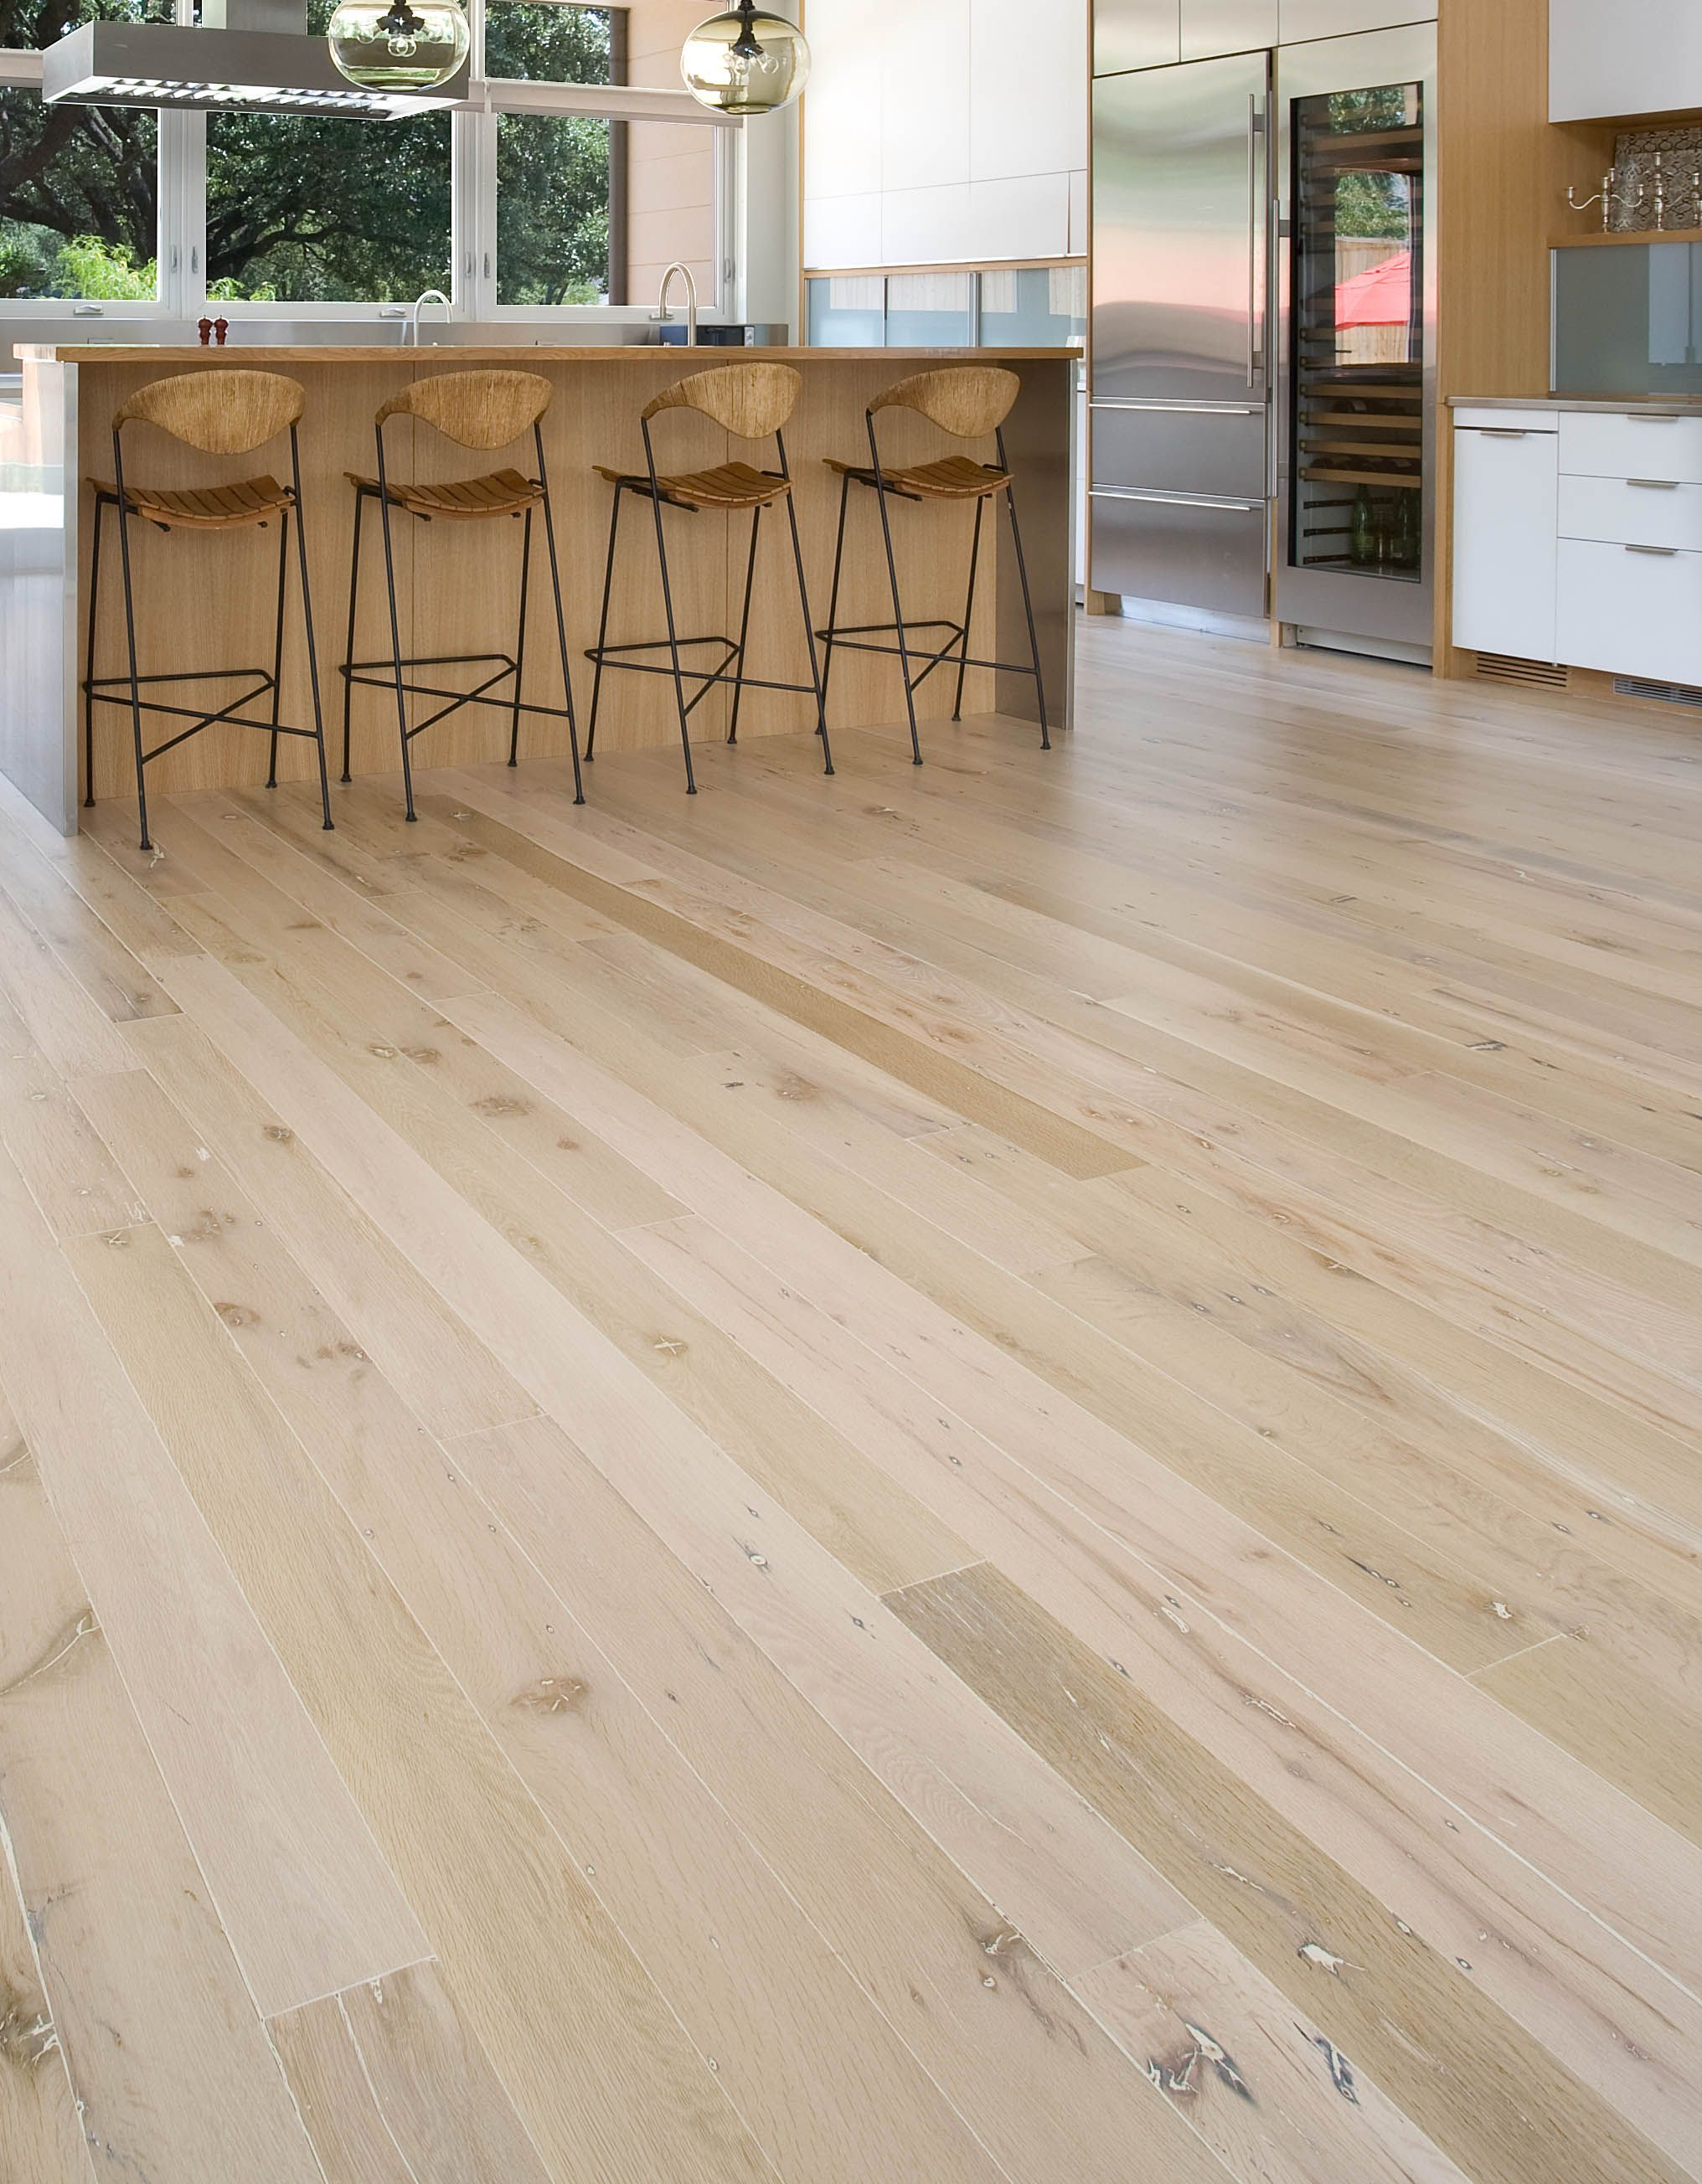 White Oak Wood Flooring From Reclaimed Timber (With images